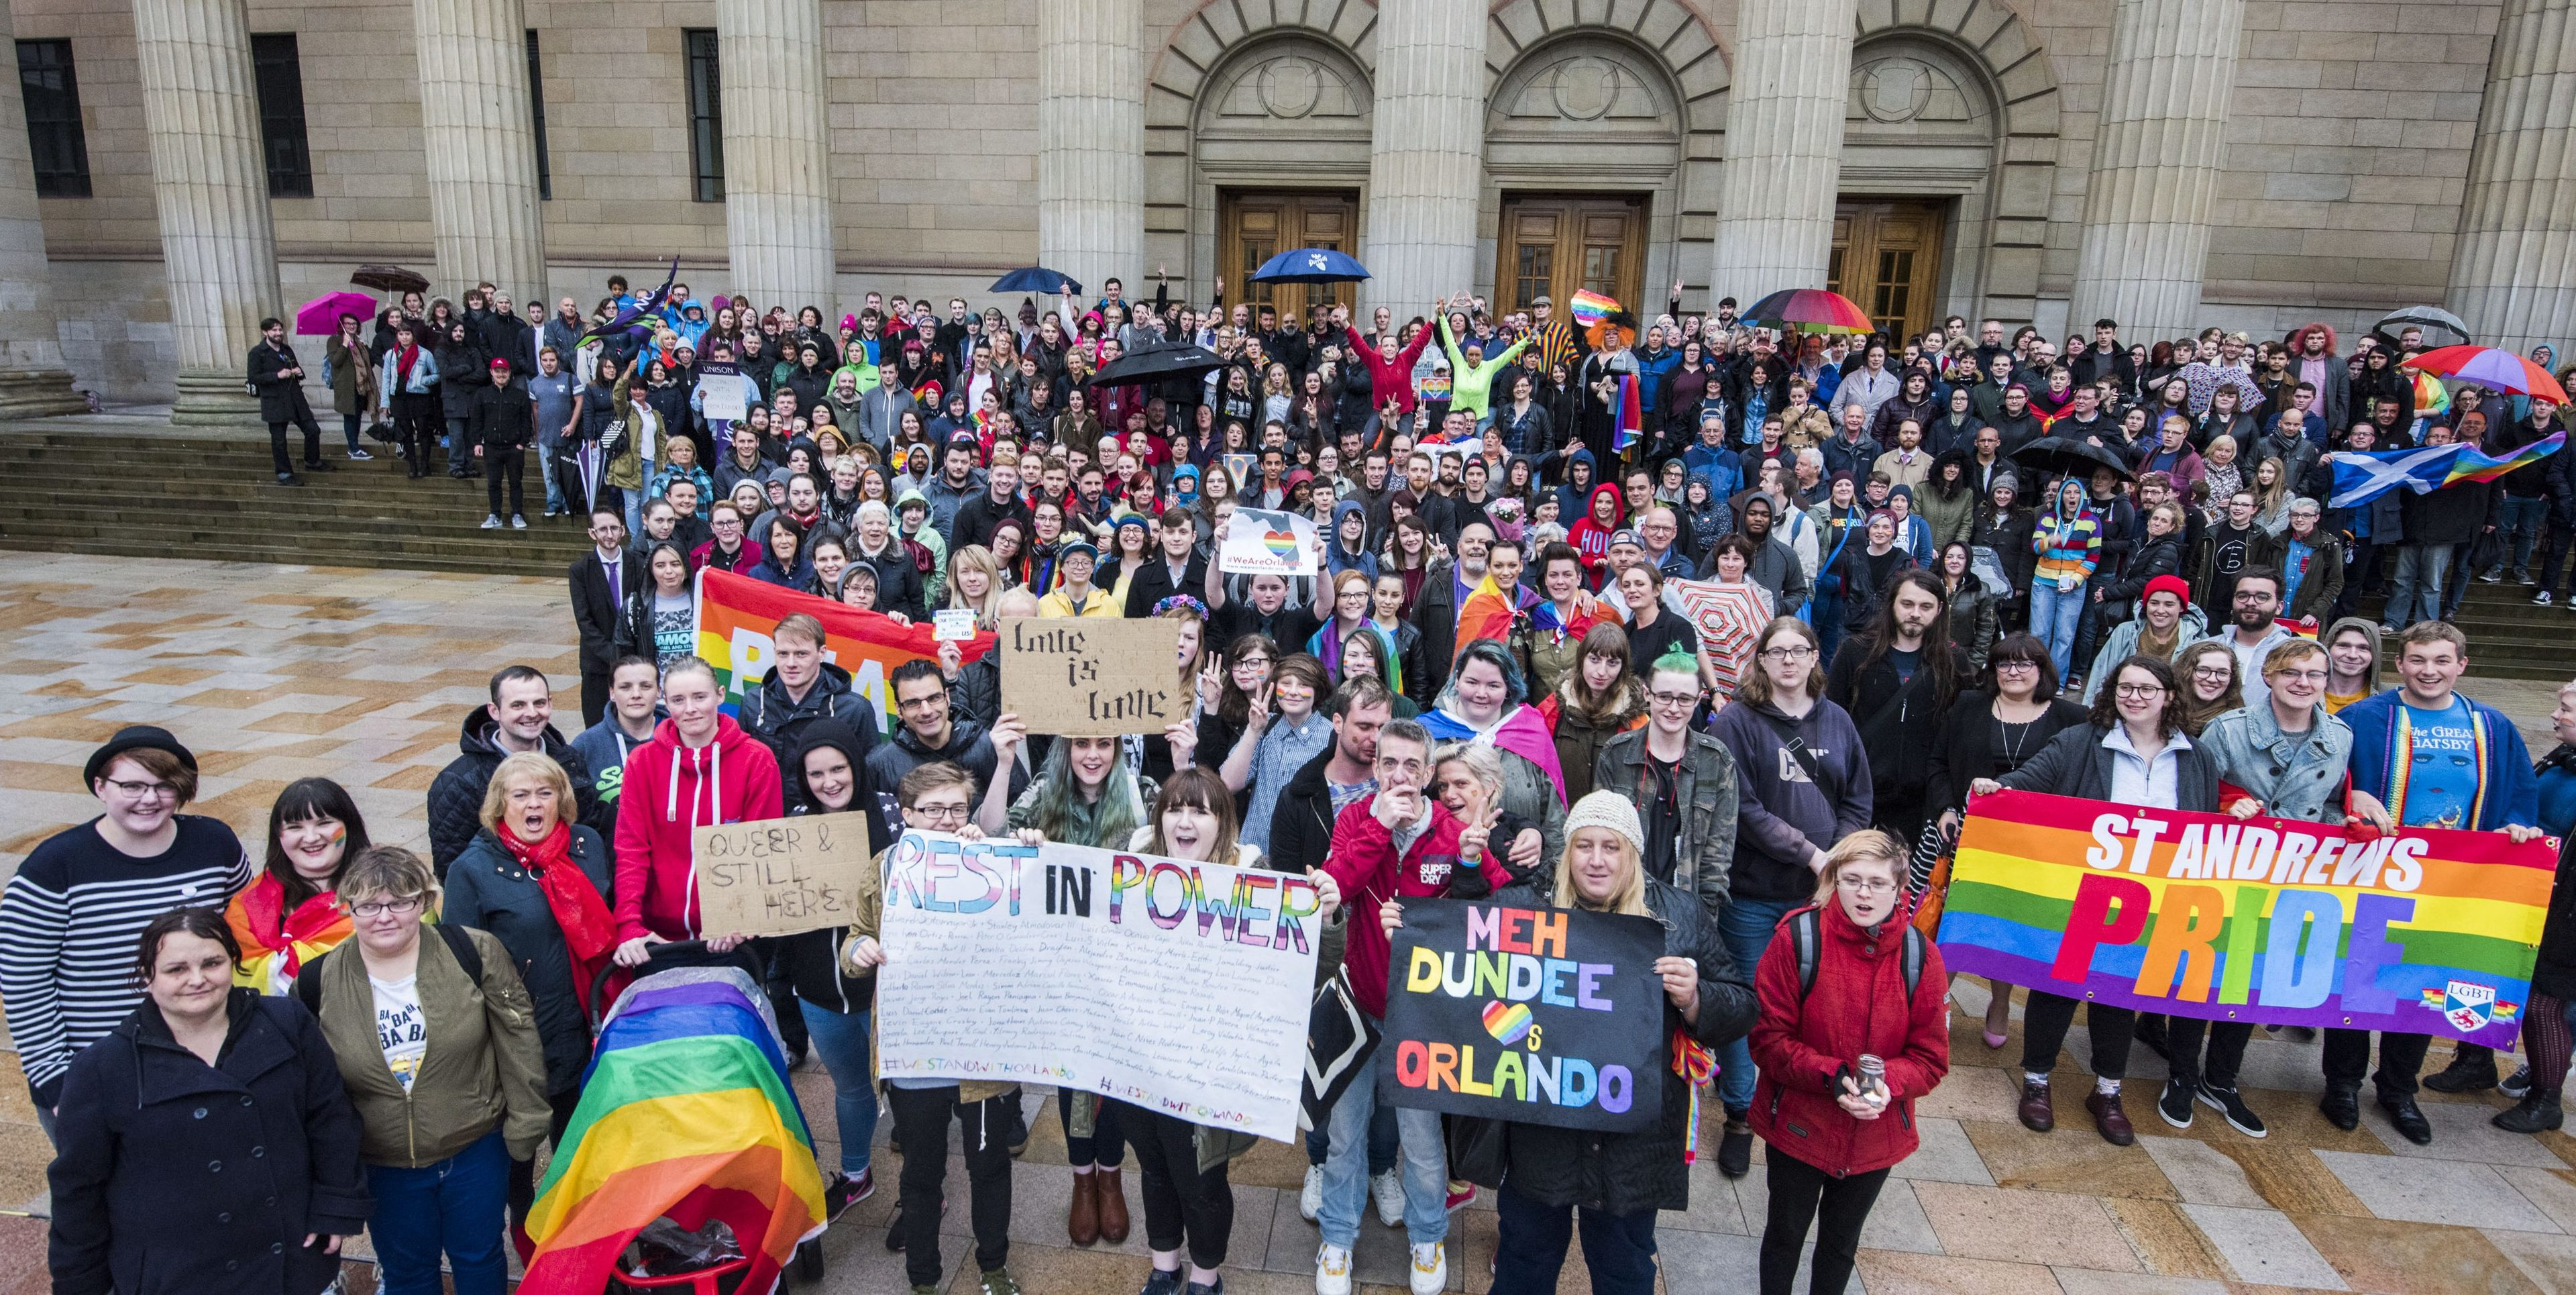 Around 300 stood in silence, lit candles and cast flowers into the fountains. Messages of support were also left at the top of the Caird Hall steps.